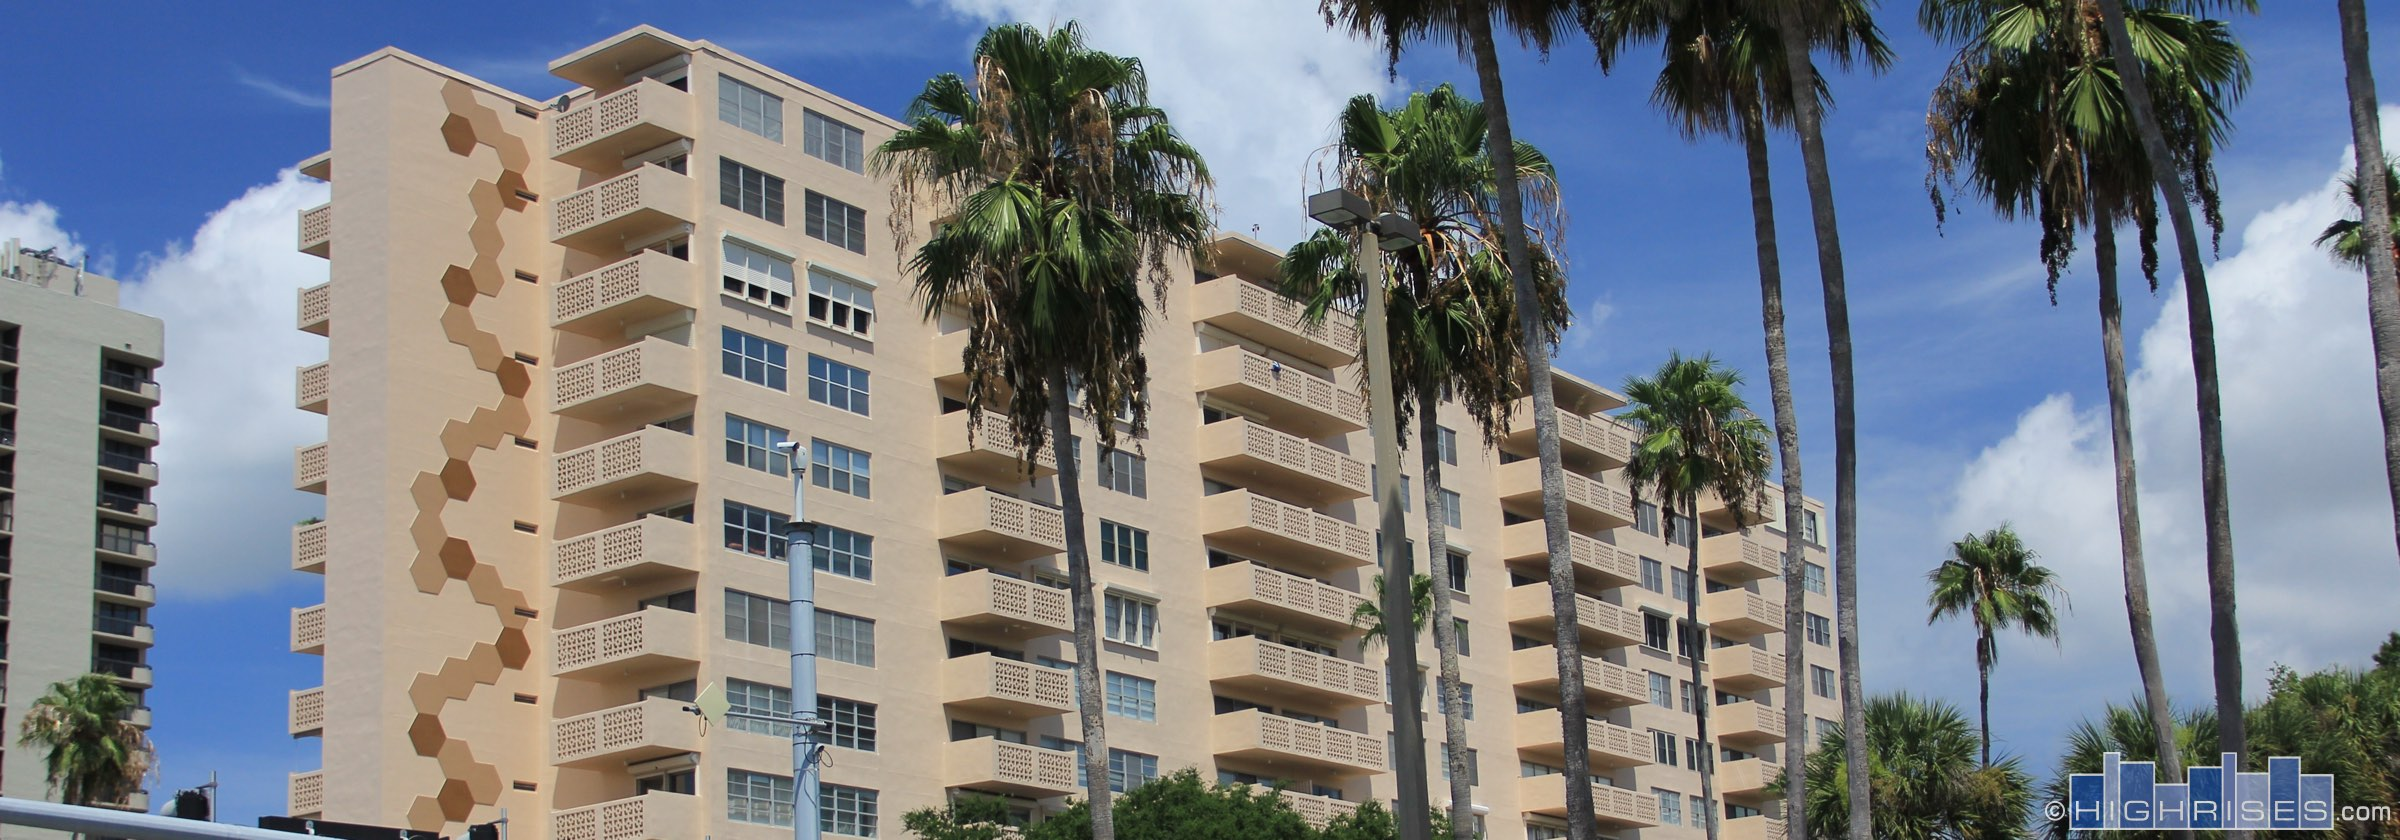 Harbour House Condos Of Tampa Fl 2401 Bayshore Blvd